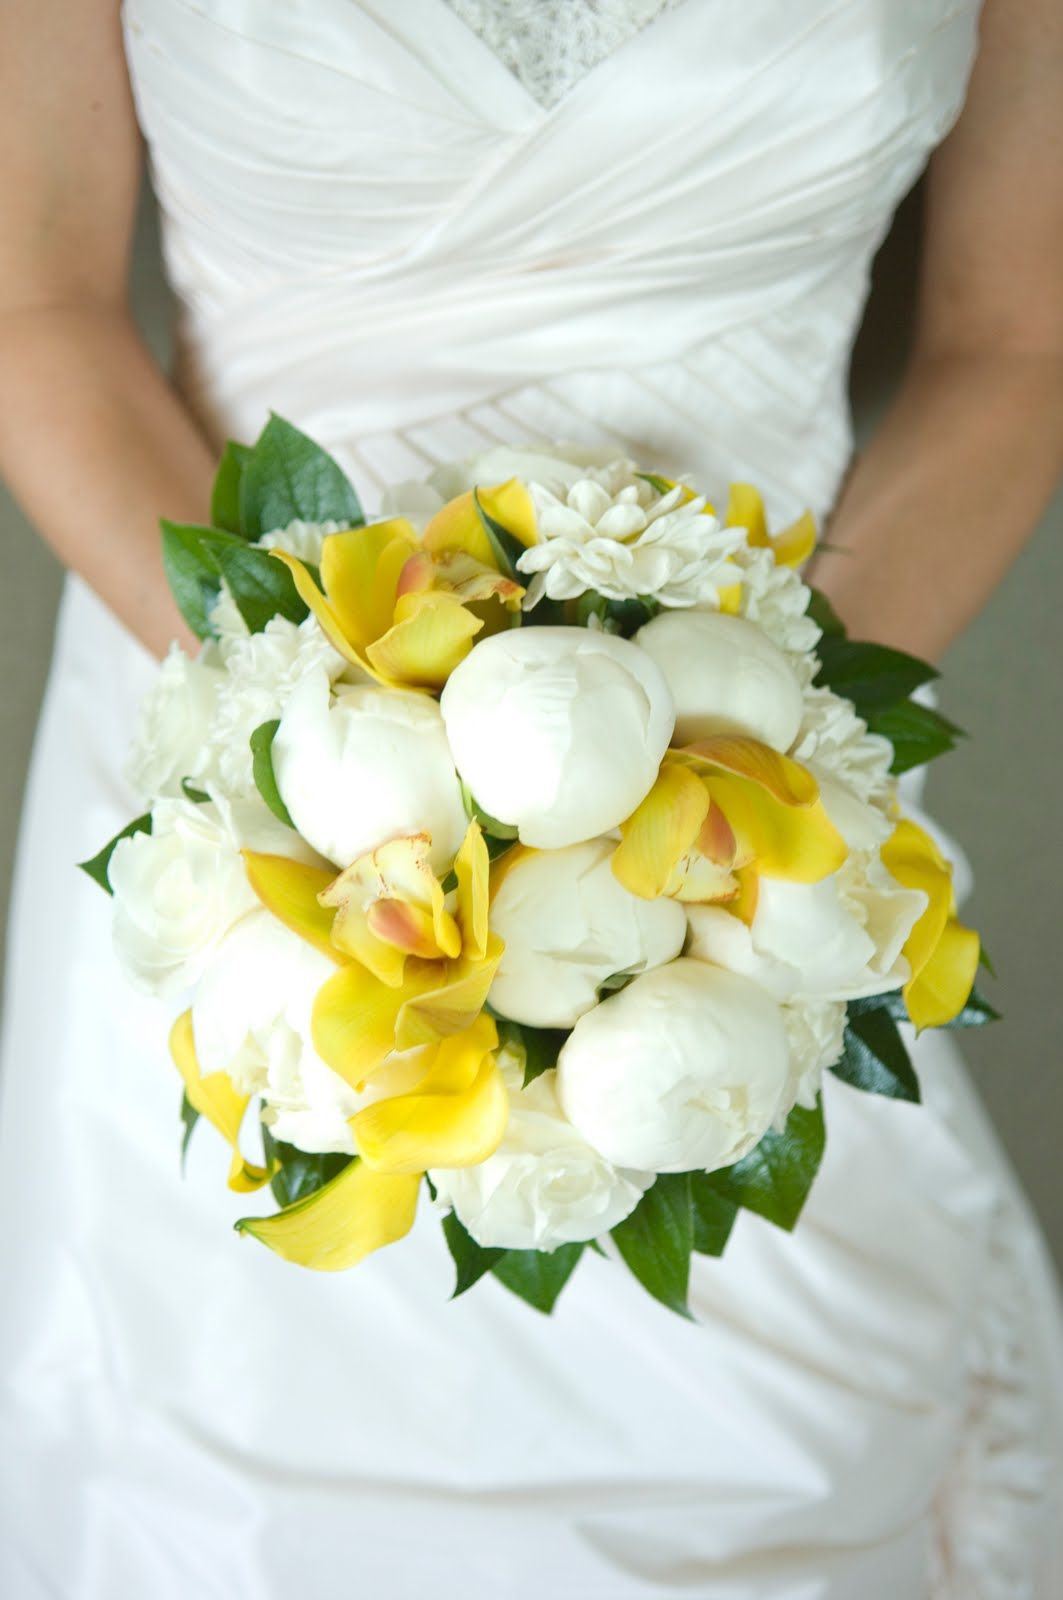 Yellow And Green Living Room Decor: Bellwether Thoughts: I Love: A White, Yellow And Green Bouquet